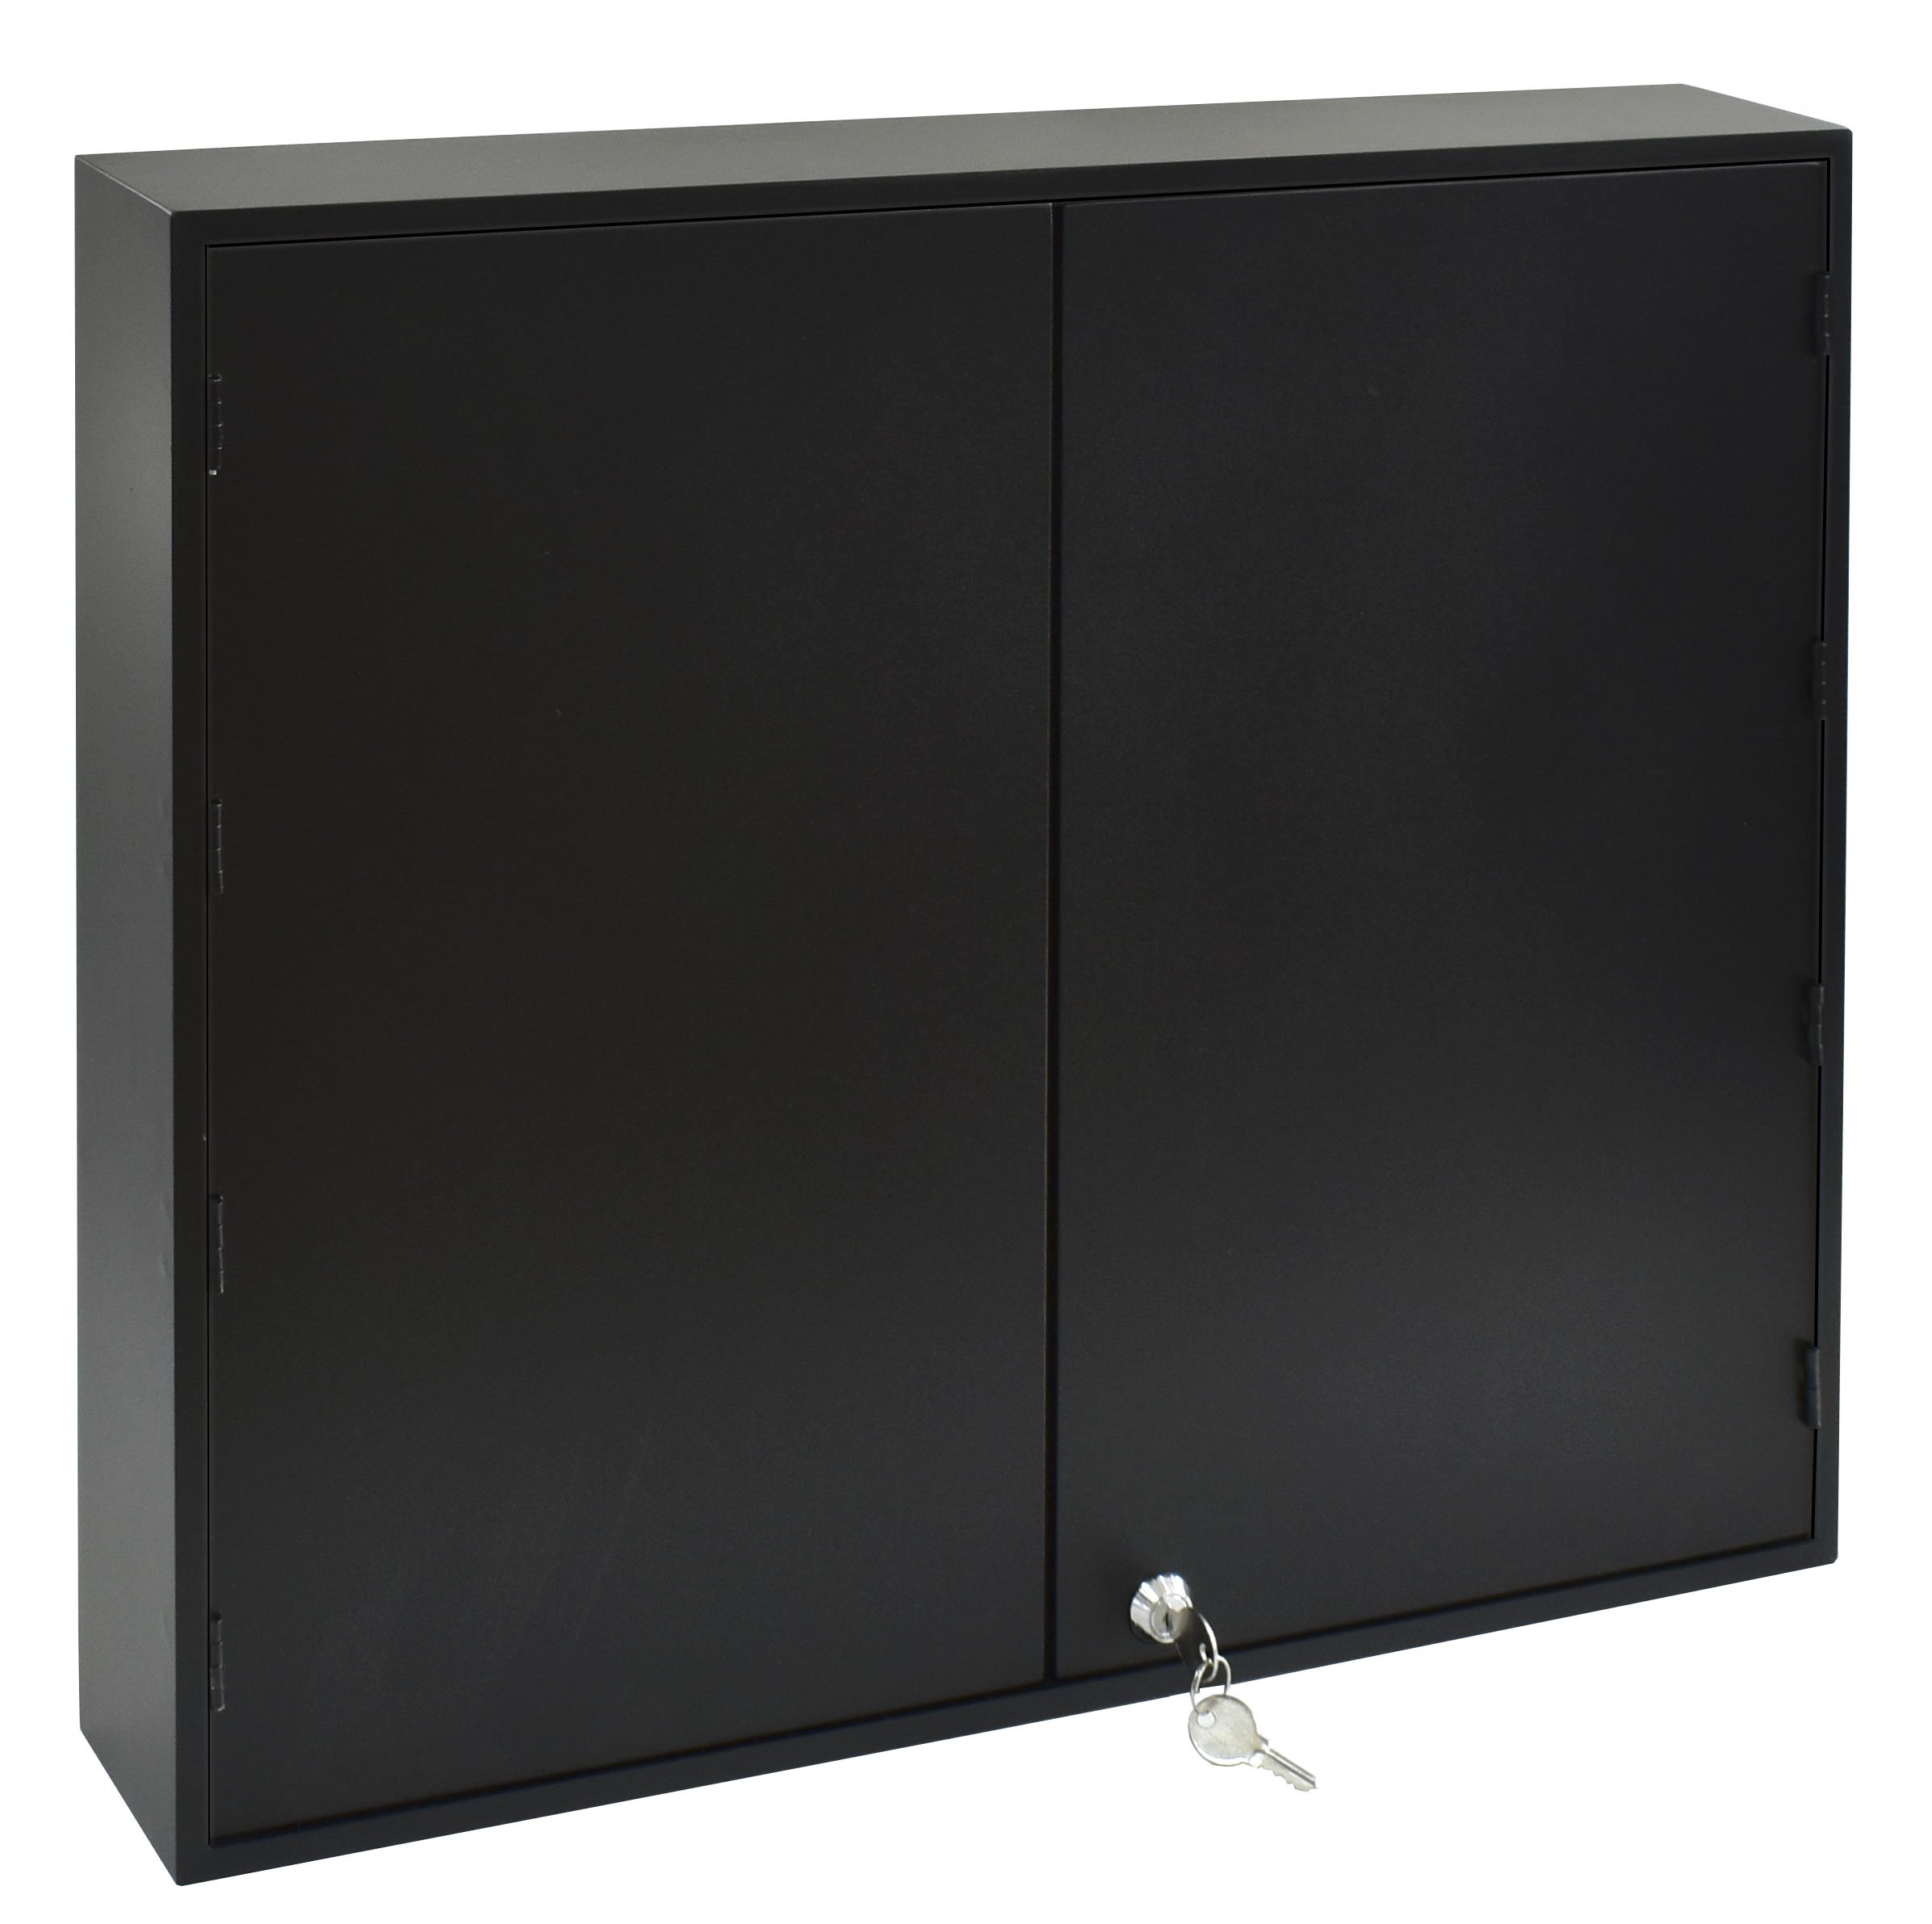 Acrimet Key Cabinet 128 Positions with 128 Key Tags (Black Color) by Acrimet (Image #2)